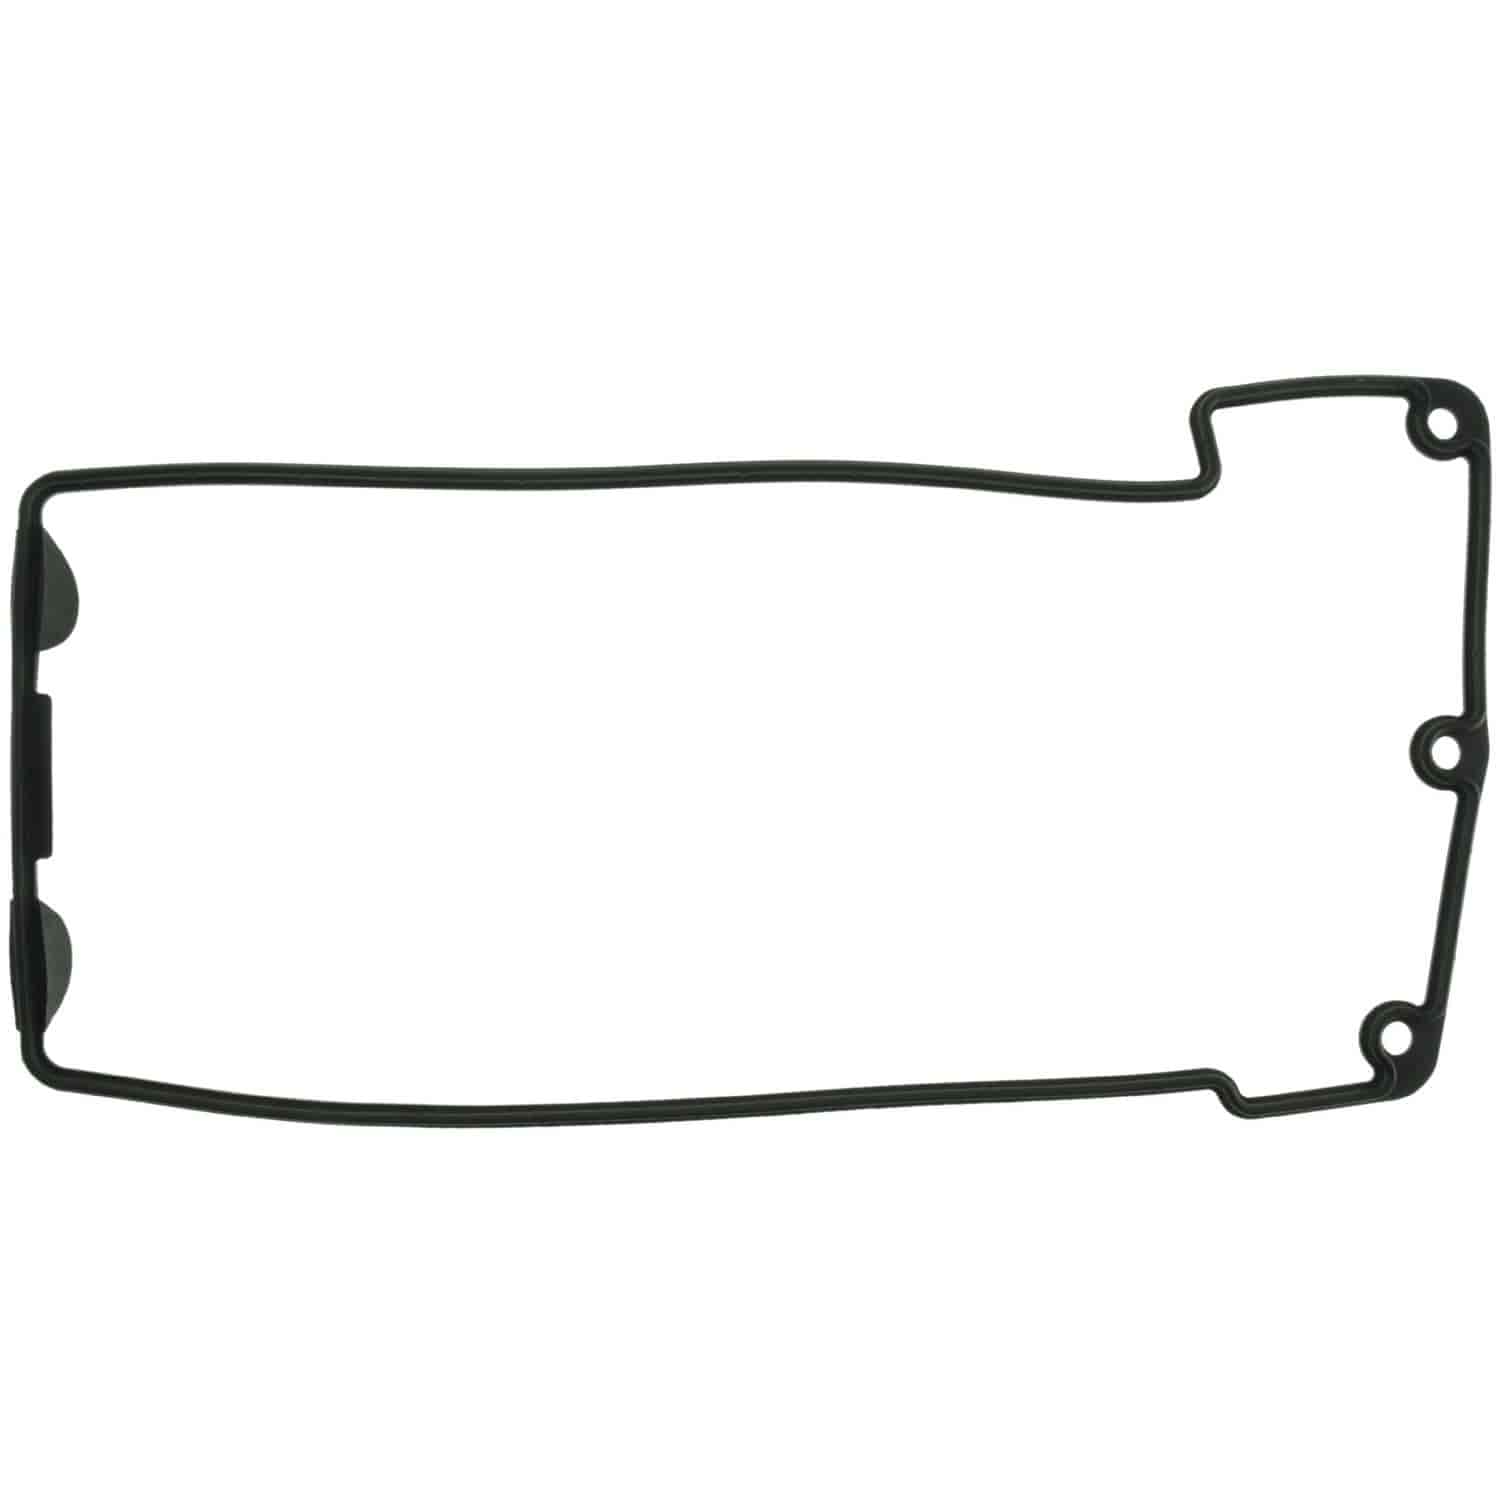 Clevite Mahle Vs Sr Valve Cover Gasket Bmw 4 4 4 6 4 8l Right Side